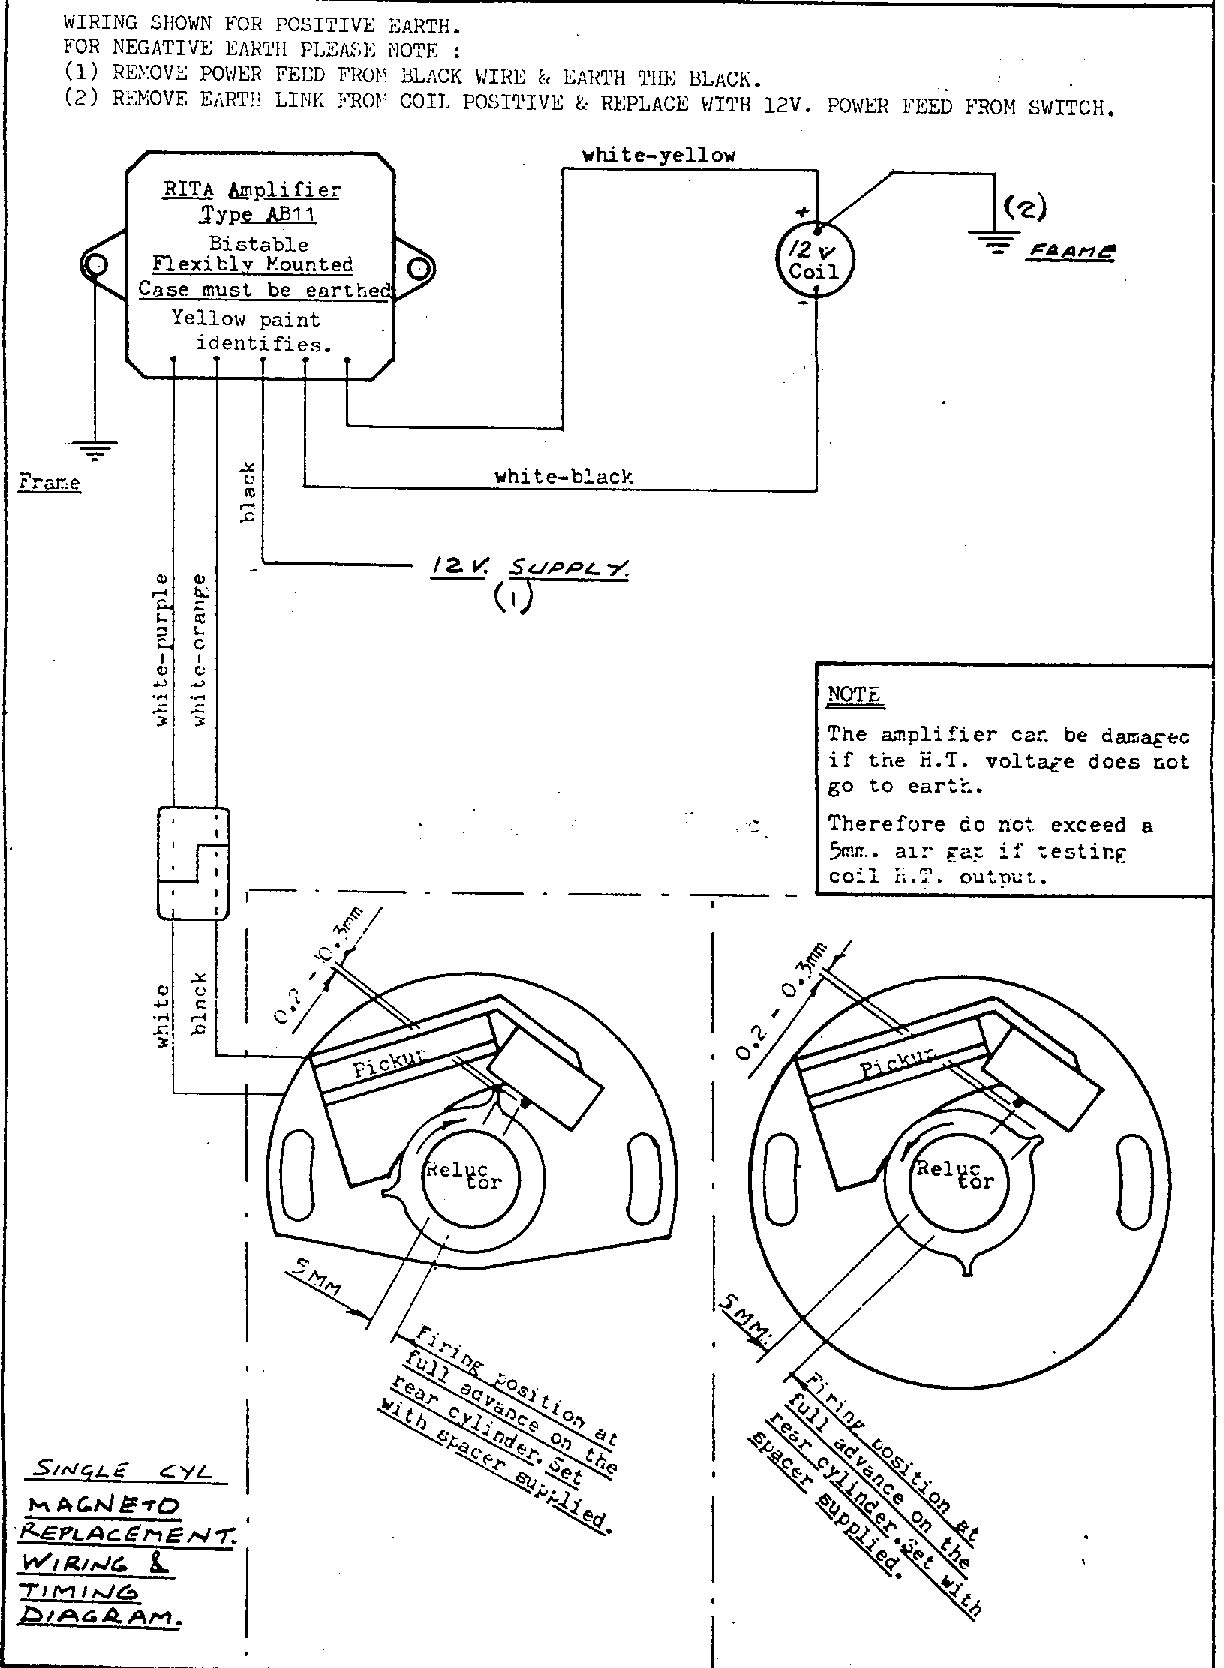 Euro Spares Electronic Components Wiring Diagram For Amplifier Installing The Lr134 Rita Ignition Magneto Replacement Single Parallel Twin